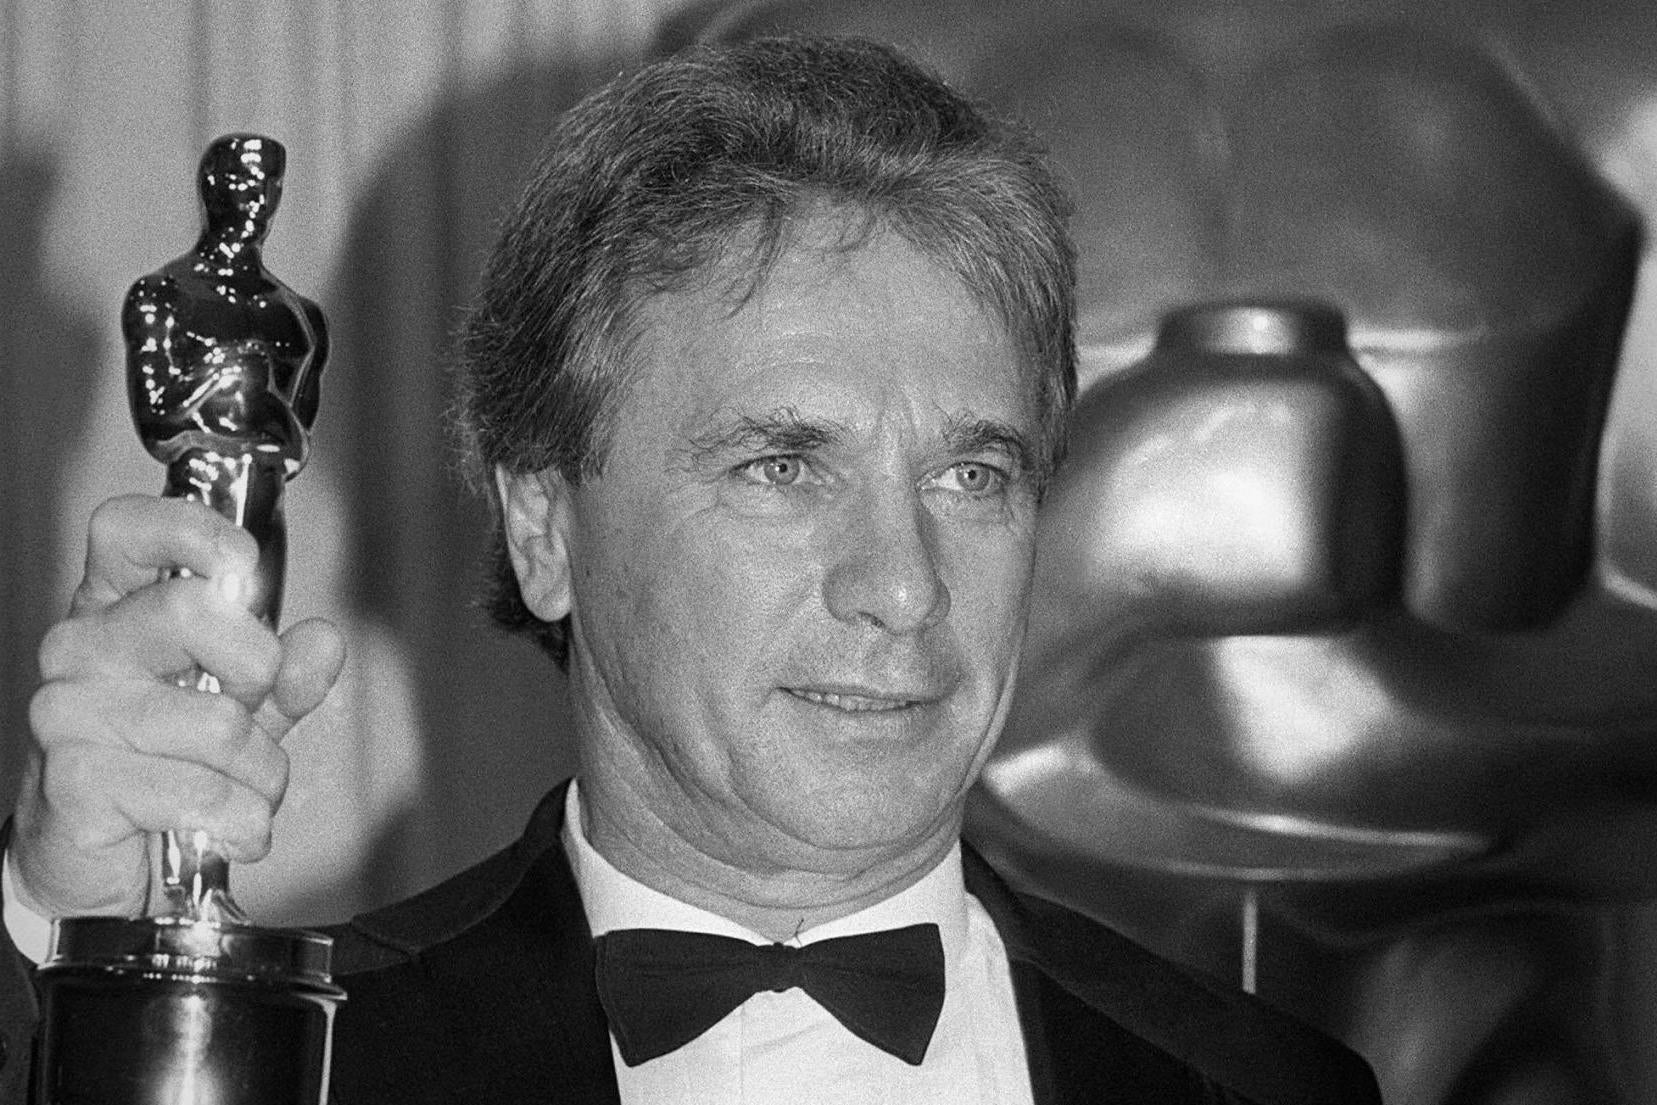 Maurice Jarre: Composer who won three Oscars for his work with David